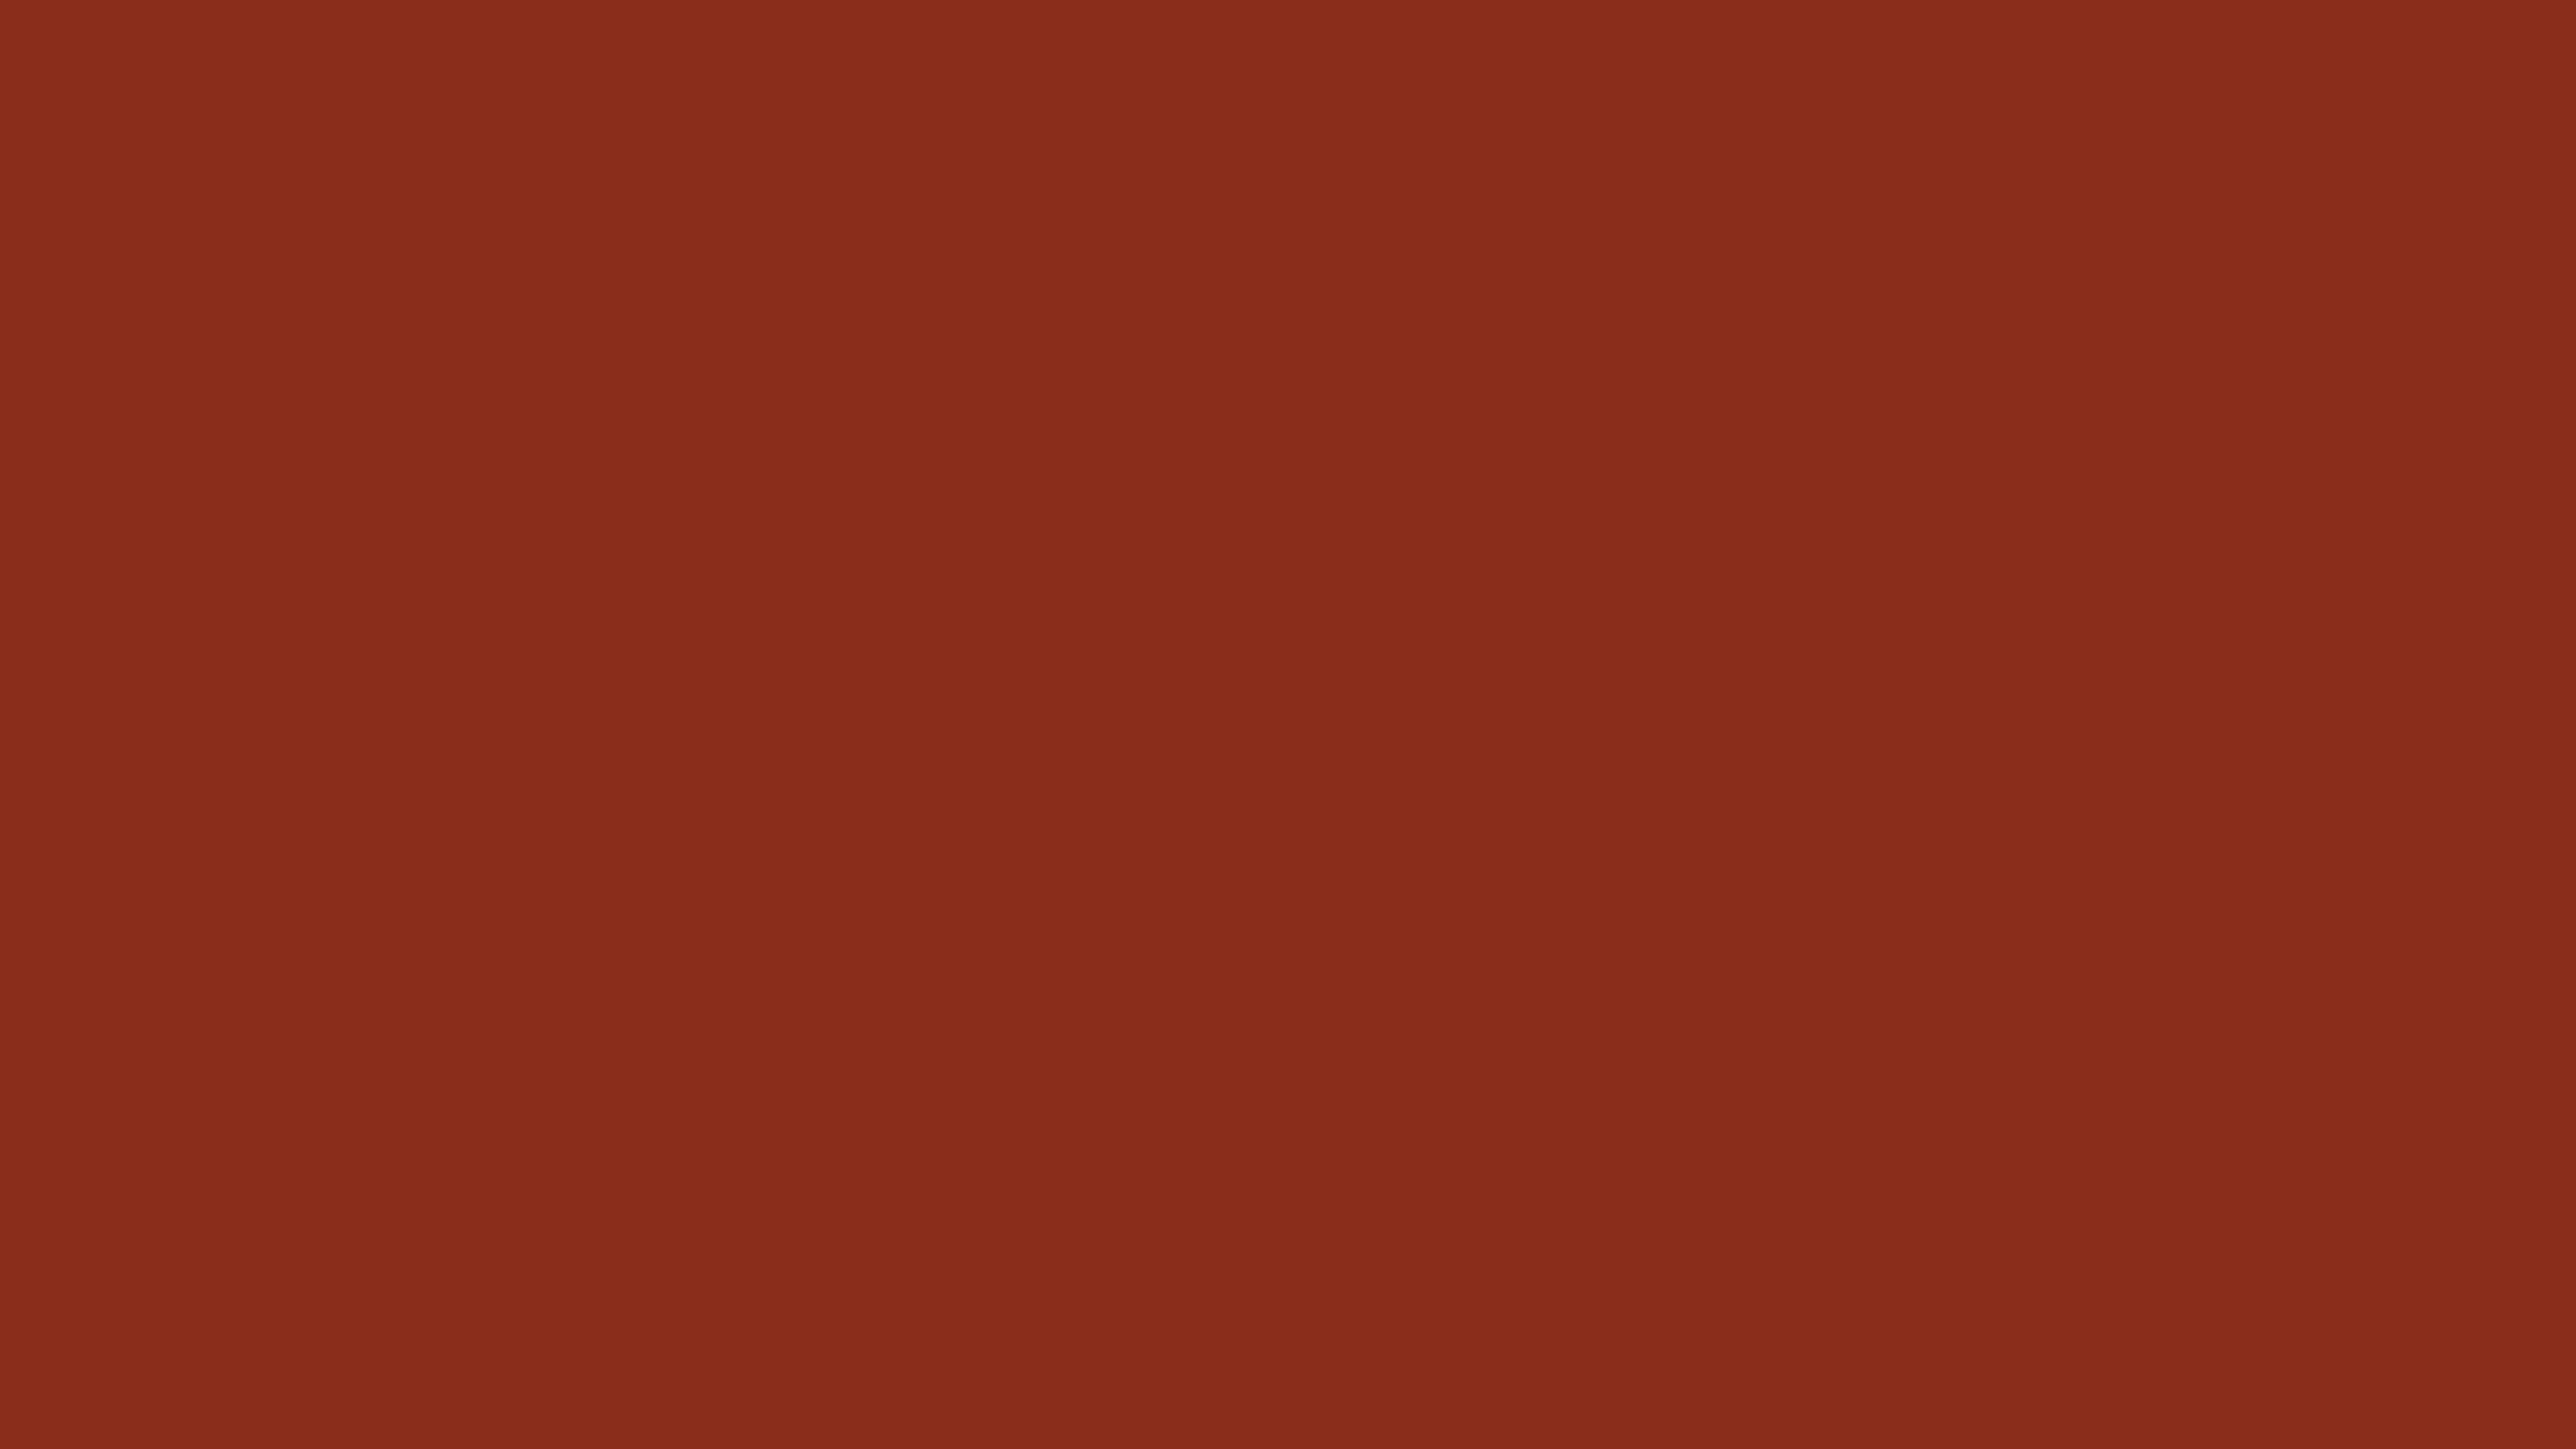 3840x2160 Sienna Solid Color Background